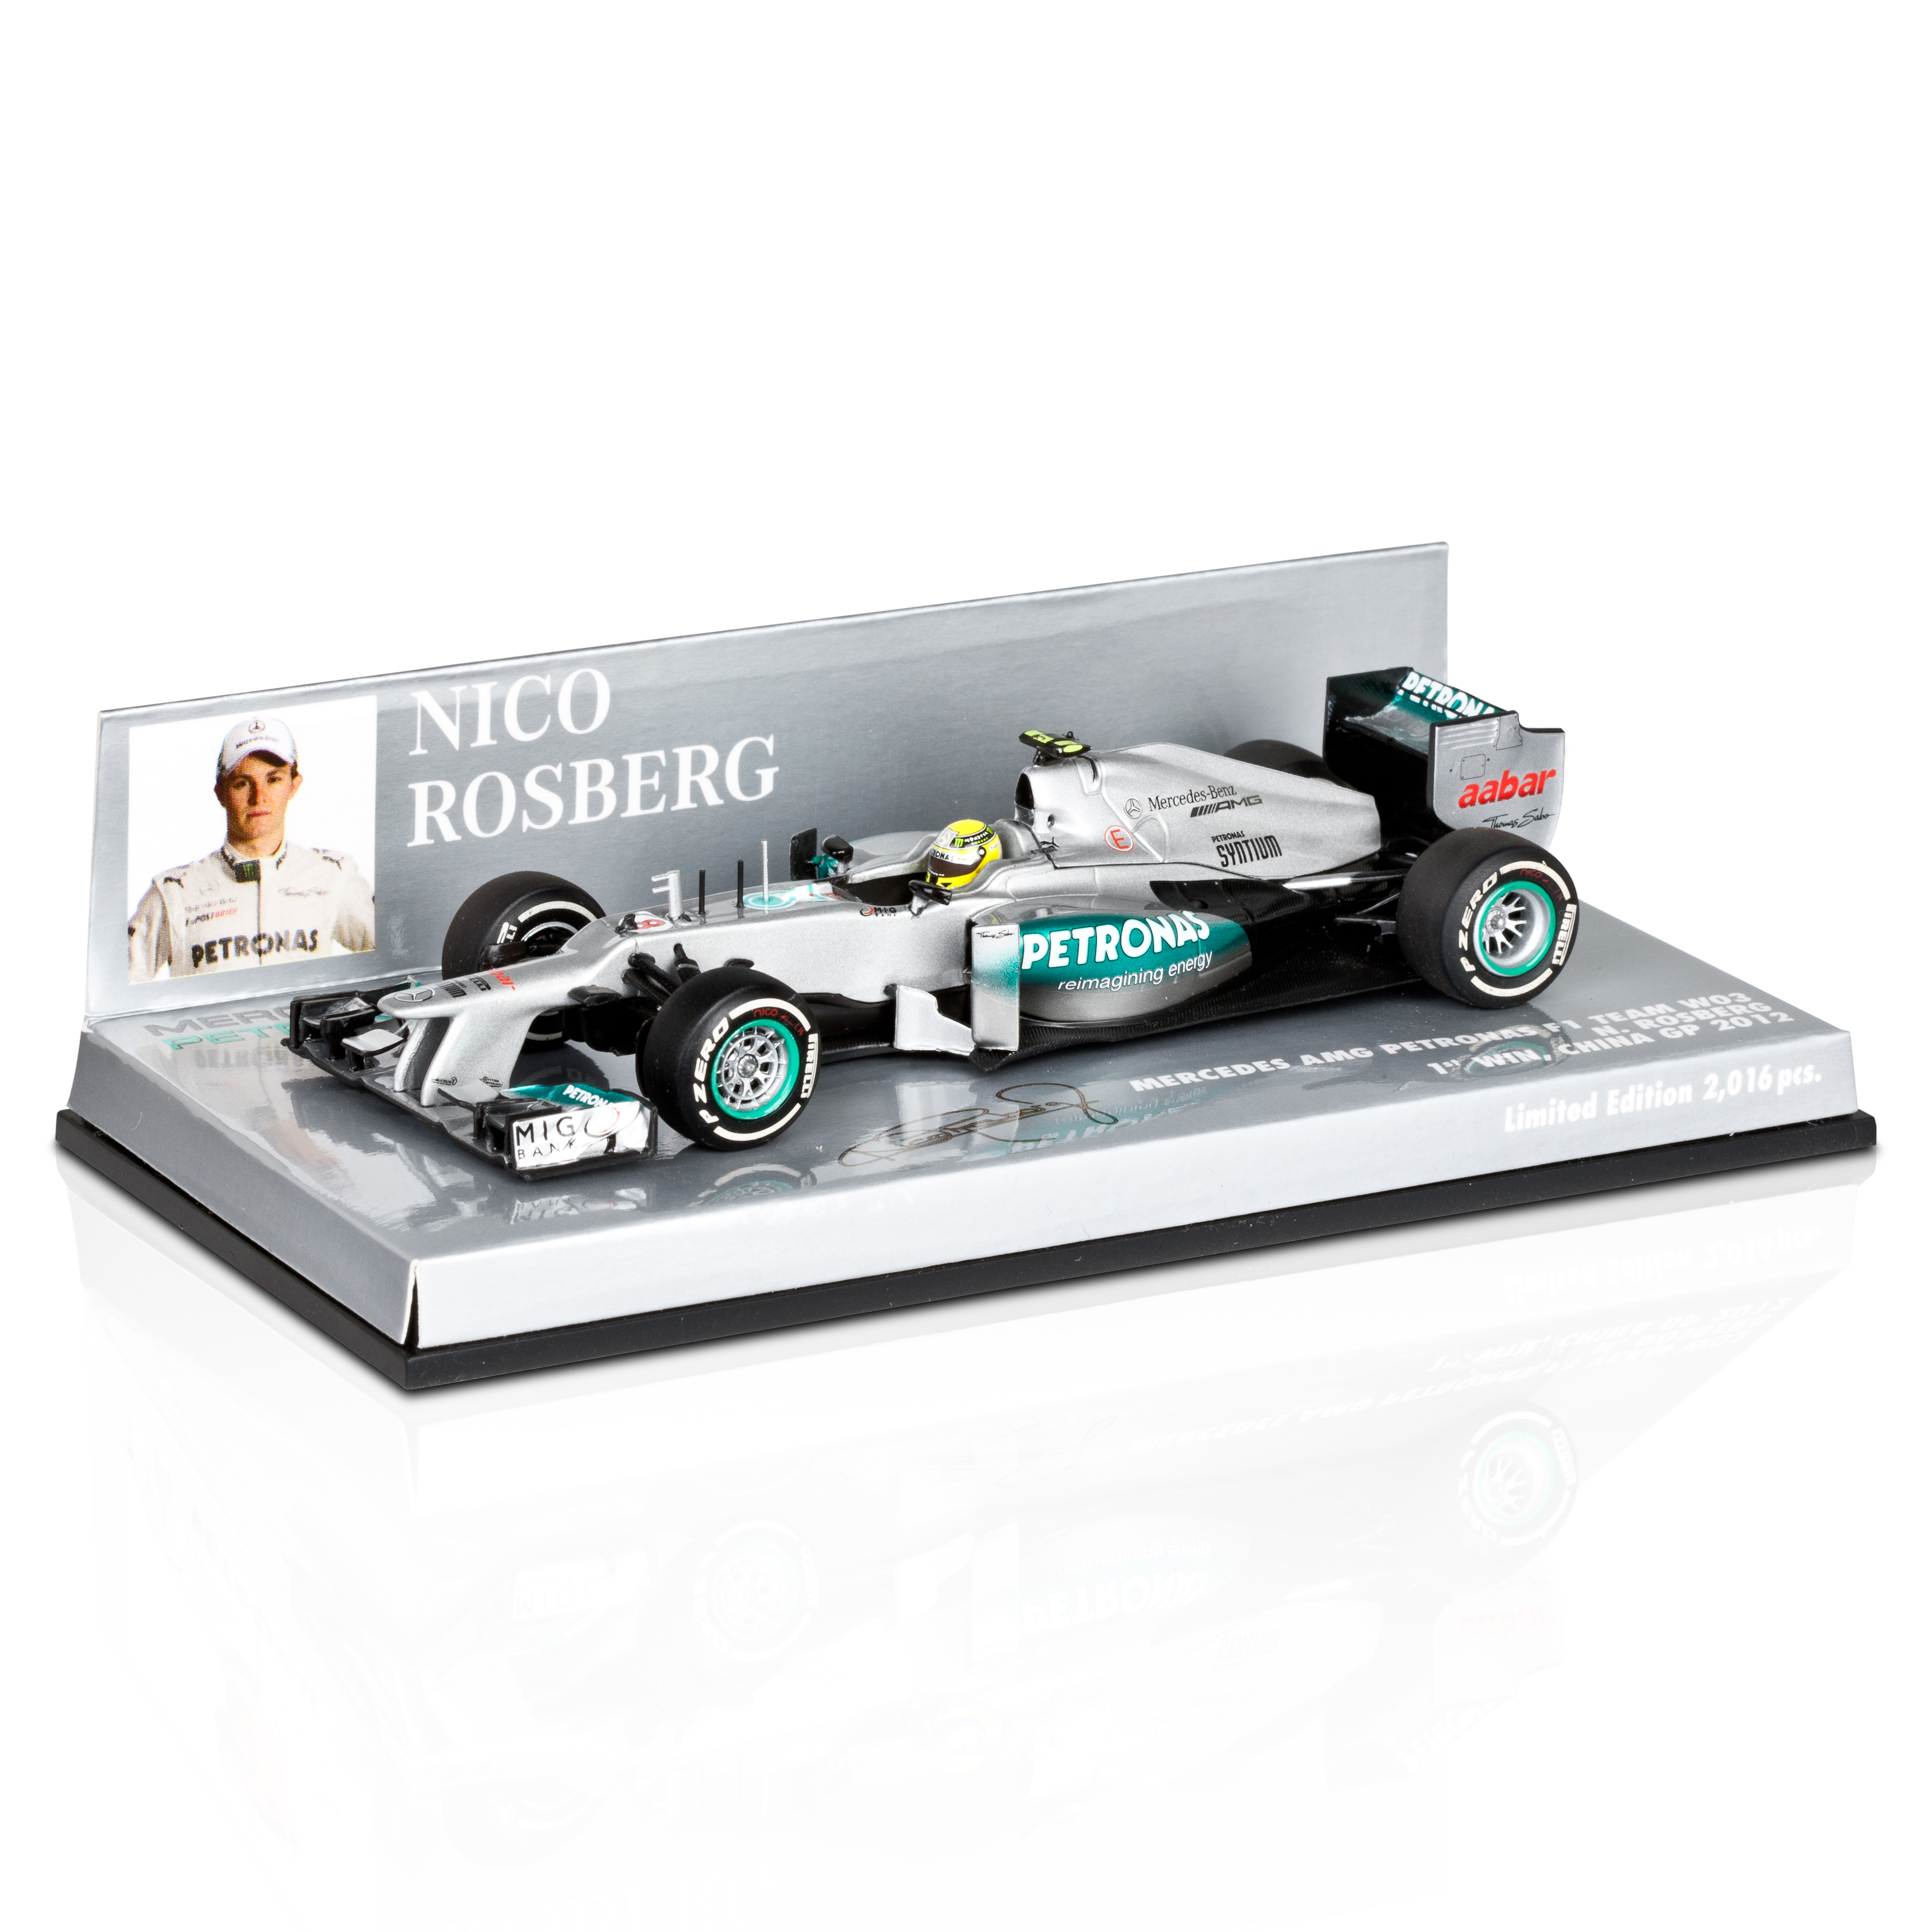 Mercedes AMG Petronas F1 Team W03 2012 Nico Rosberg - 1st F1 Win Chinese GP - Limited Edition 1:43 Scale